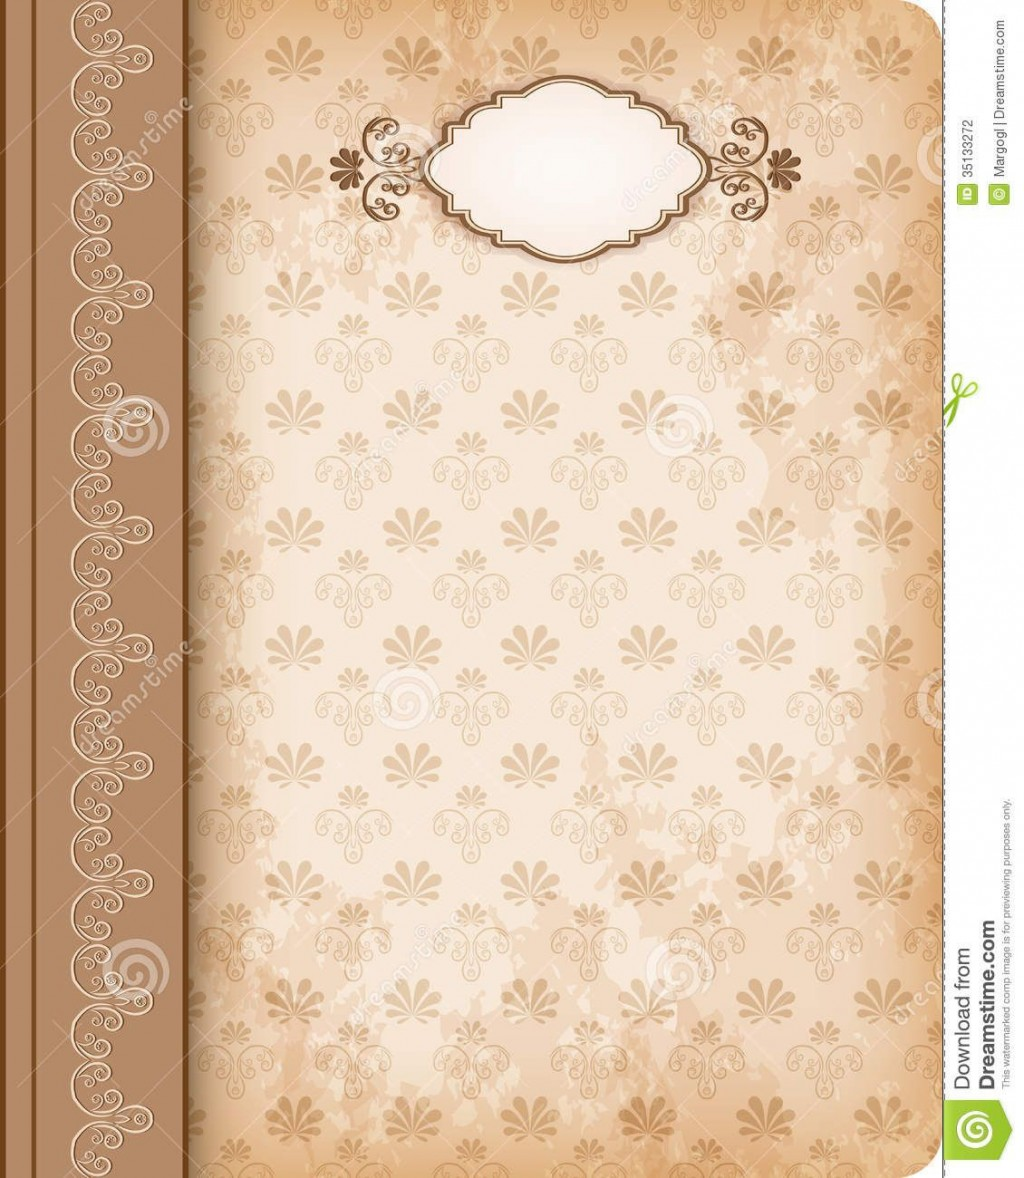 006 Sensational Old Book Cover Template Picture  Fashioned WordLarge